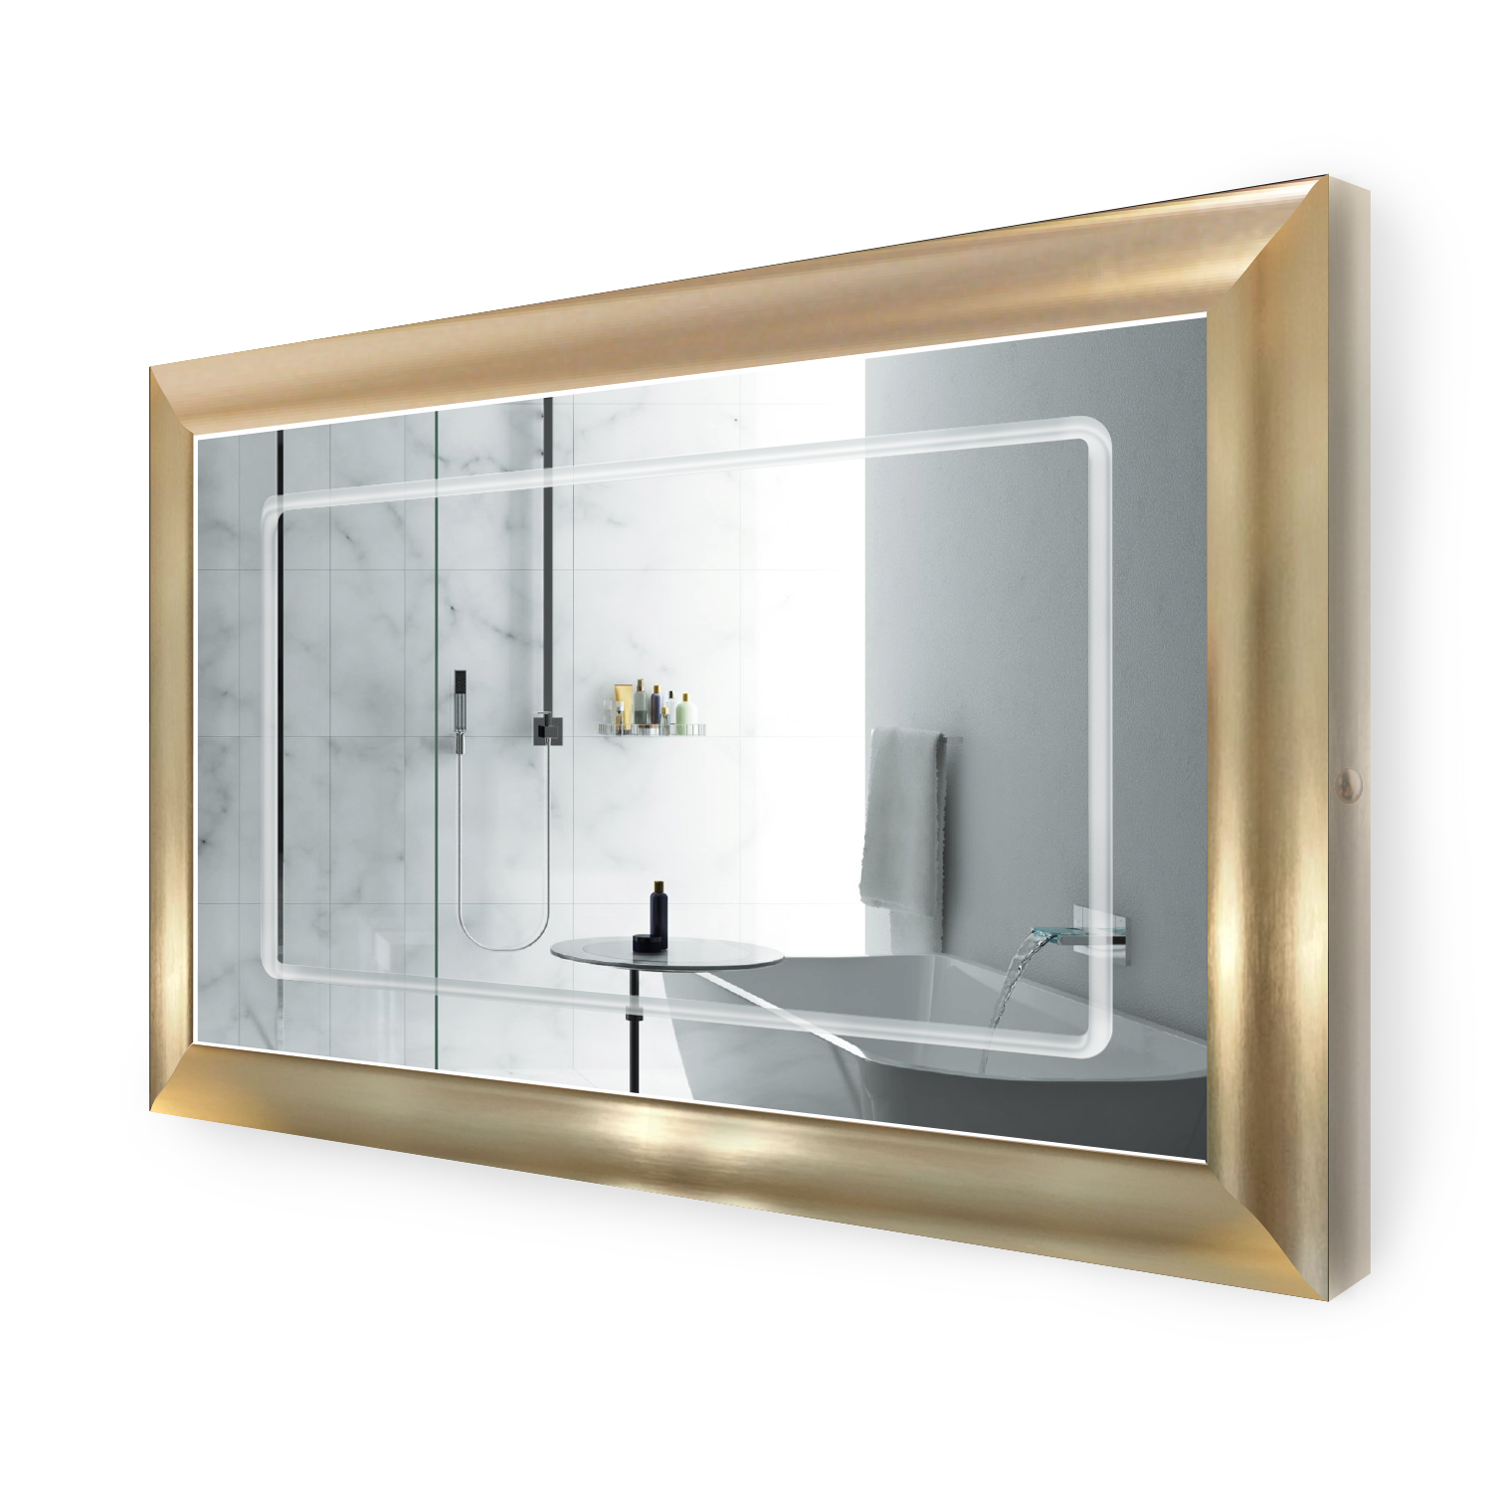 led lit bathroom mirrors led lighted 48 inch x 30 inch bathroom gold frame mirror 19196